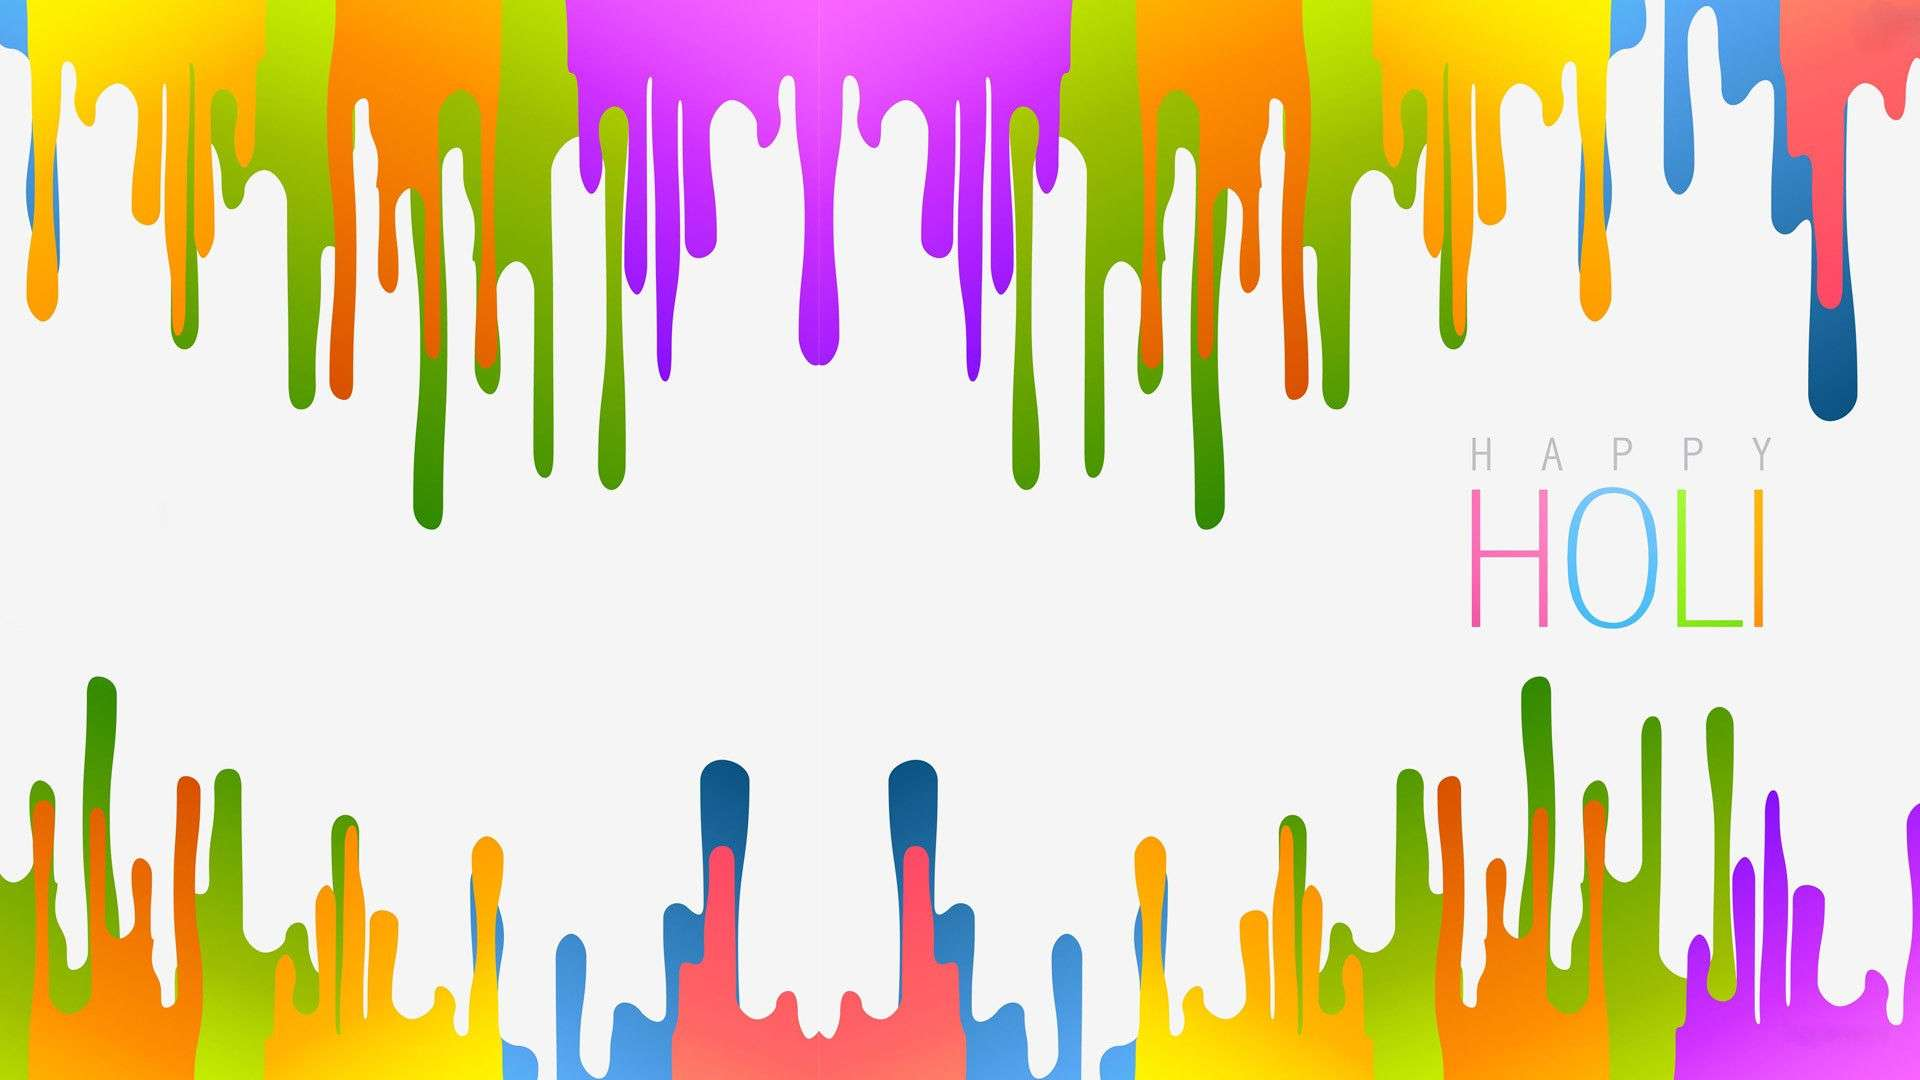 Holi Wallpaper 040